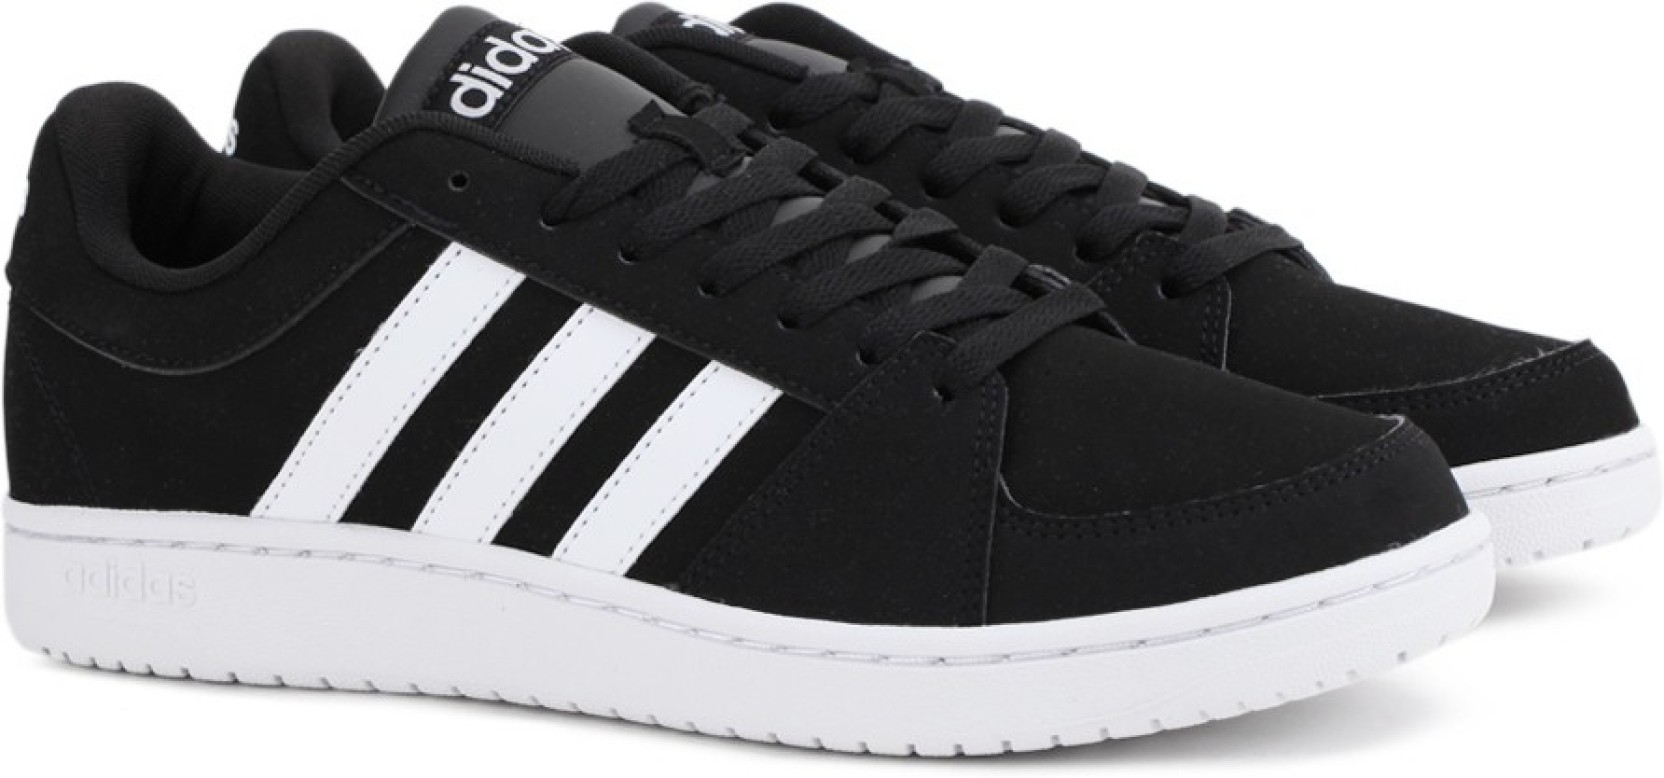 sneakers for cheap e6bee bcc89 ADIDAS NEO VS HOOPS Sneakers For Men (Black)